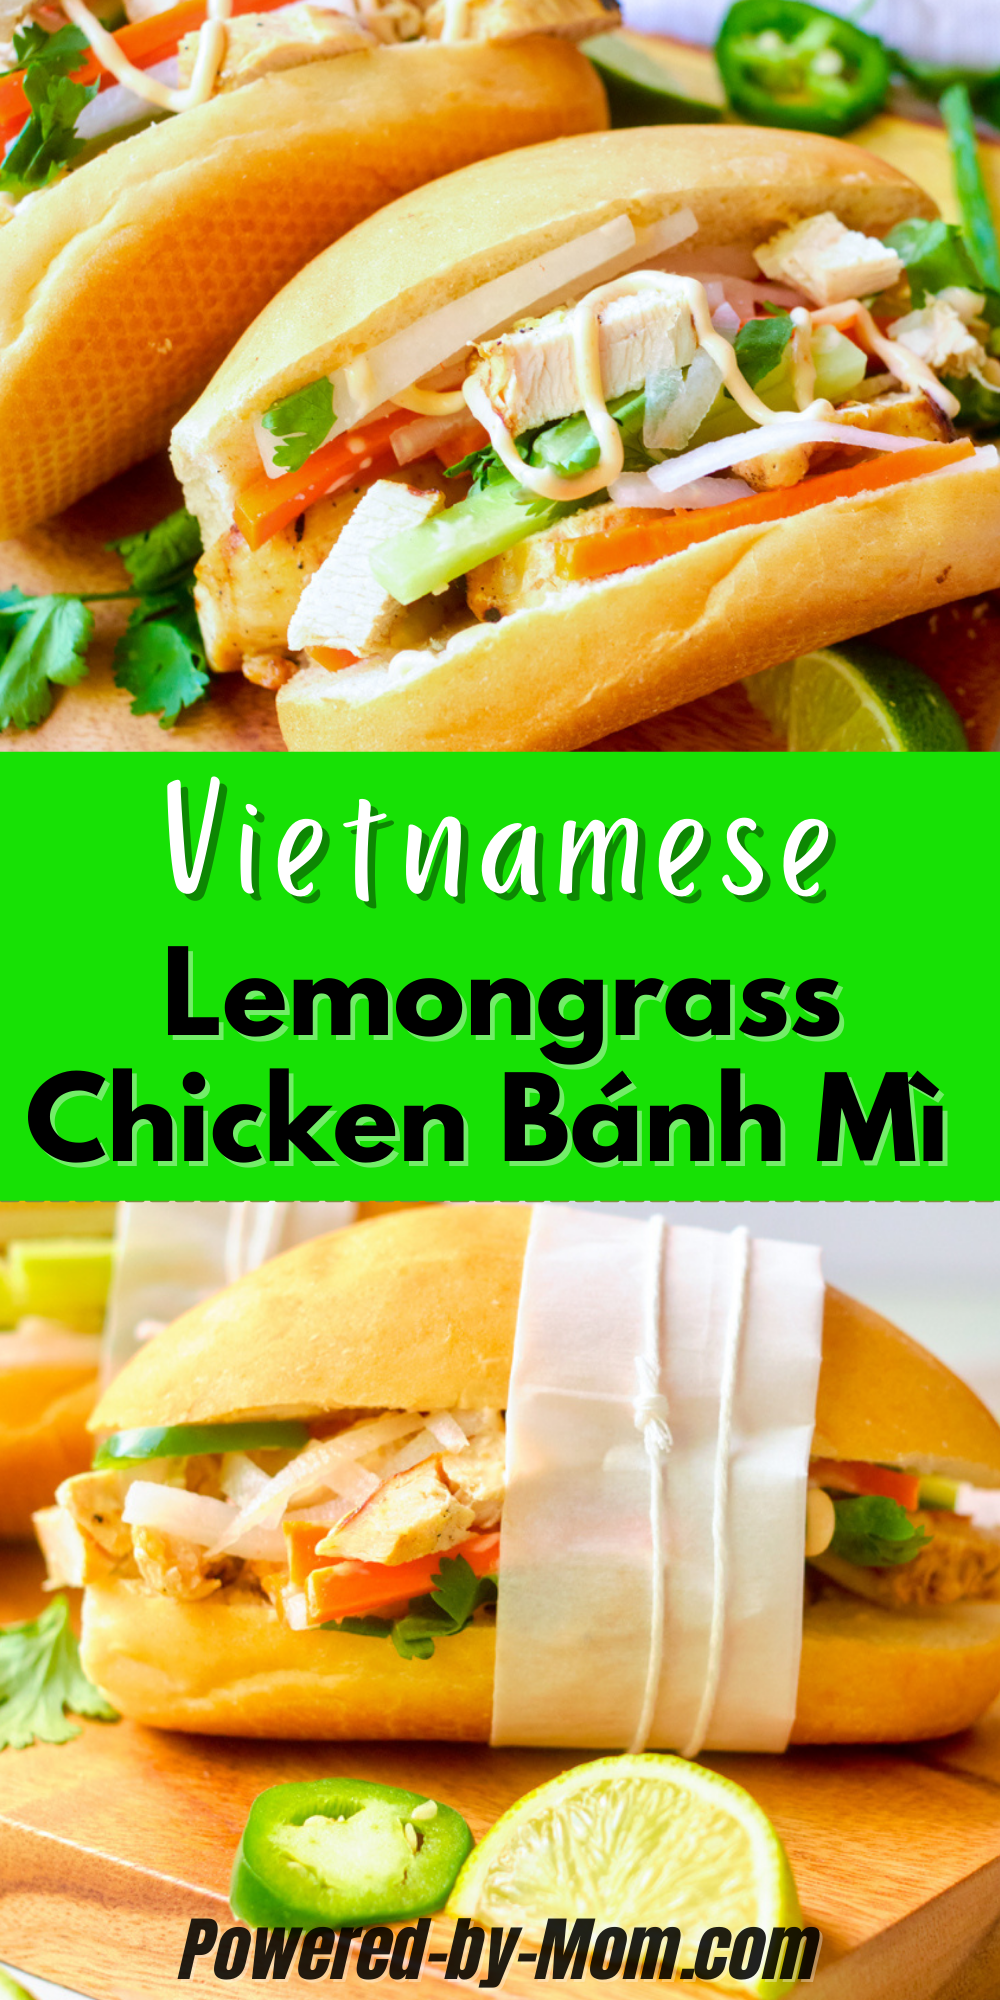 This recipe is for a Lemongrass Chicken Bánh Mì with sriracha mayo (yum) and we're sharing how you can make several meals from a batch of yummy lemongrass chicken to make your meal planning all that much easier! Before we know it the kids will be back in school and we want to make lunches for them and us easier. The kiddos can add the toppings they like and so can you!